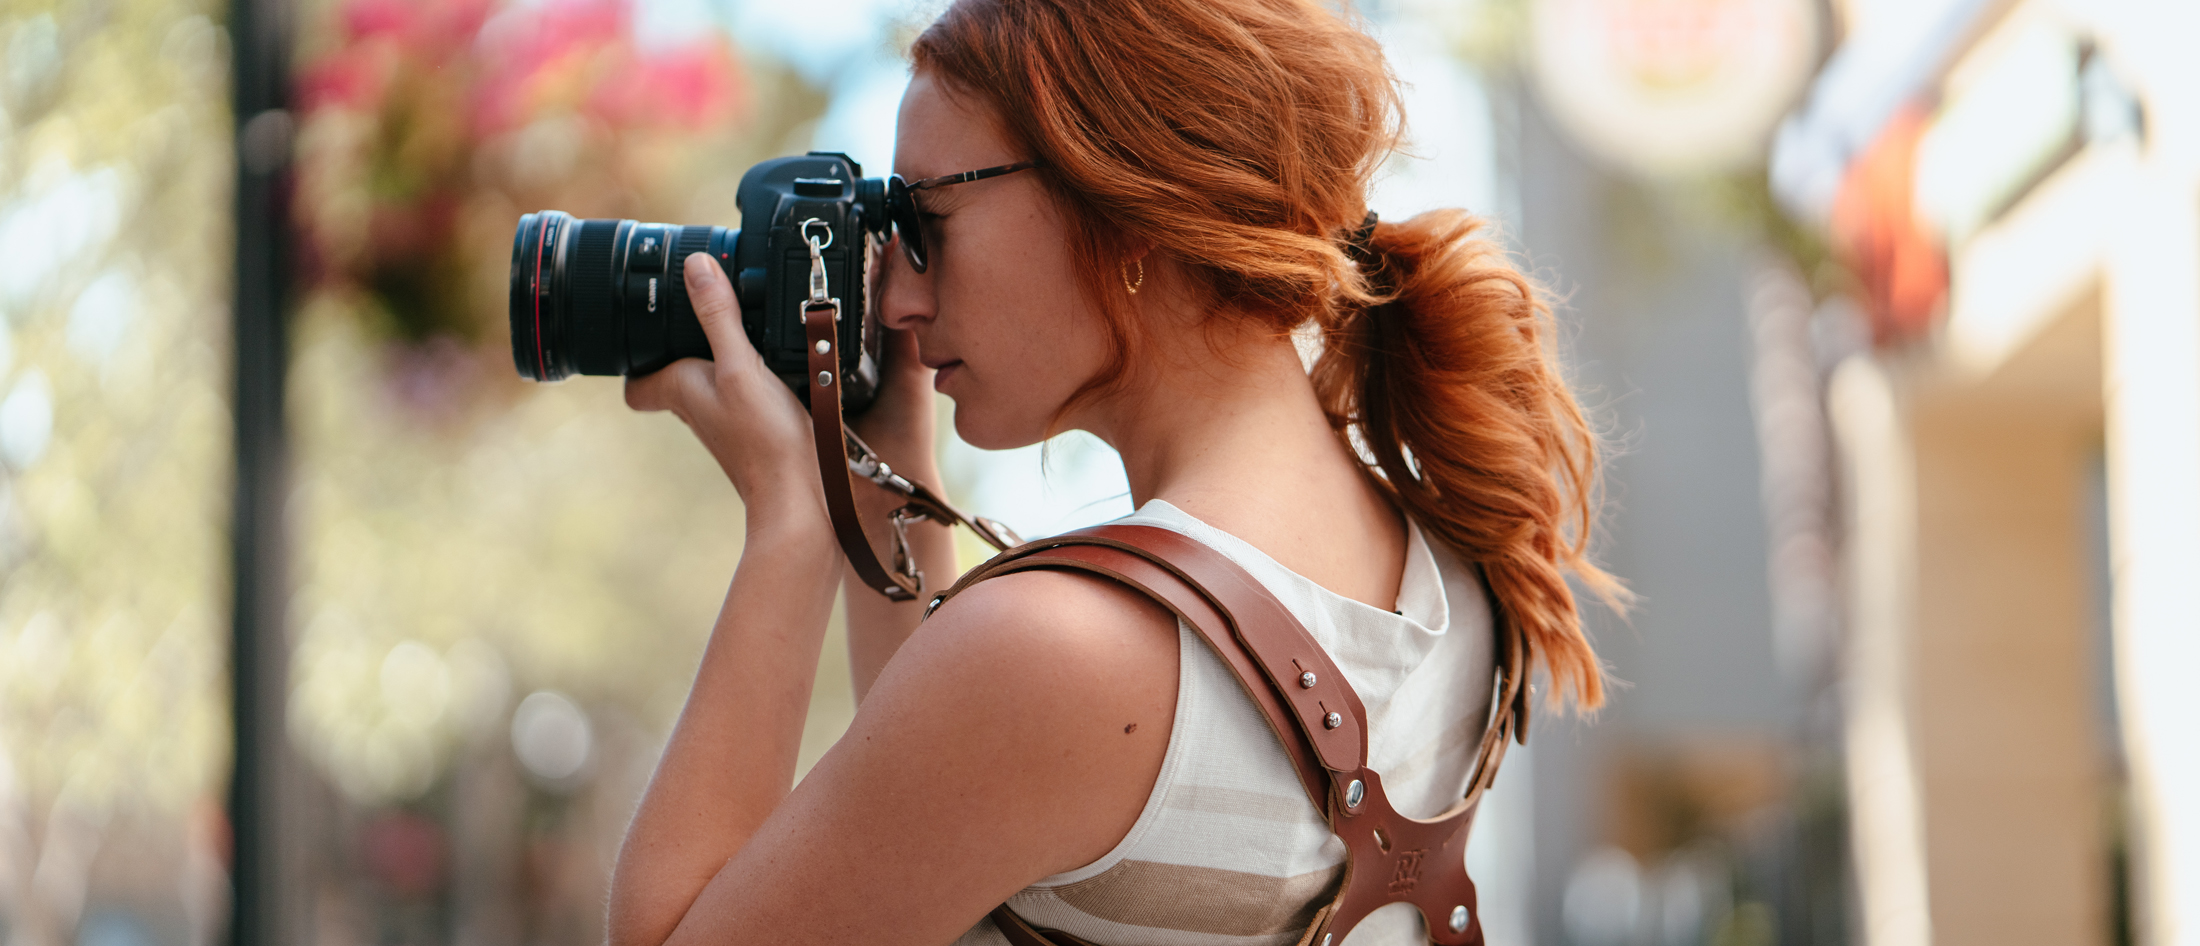 Large, Coffee Sling /& Strap RL Handcrafts DLSR Mirrorless Rebel Dual Handmade Leather Camera Harness Point /& Shoot Made in The USA